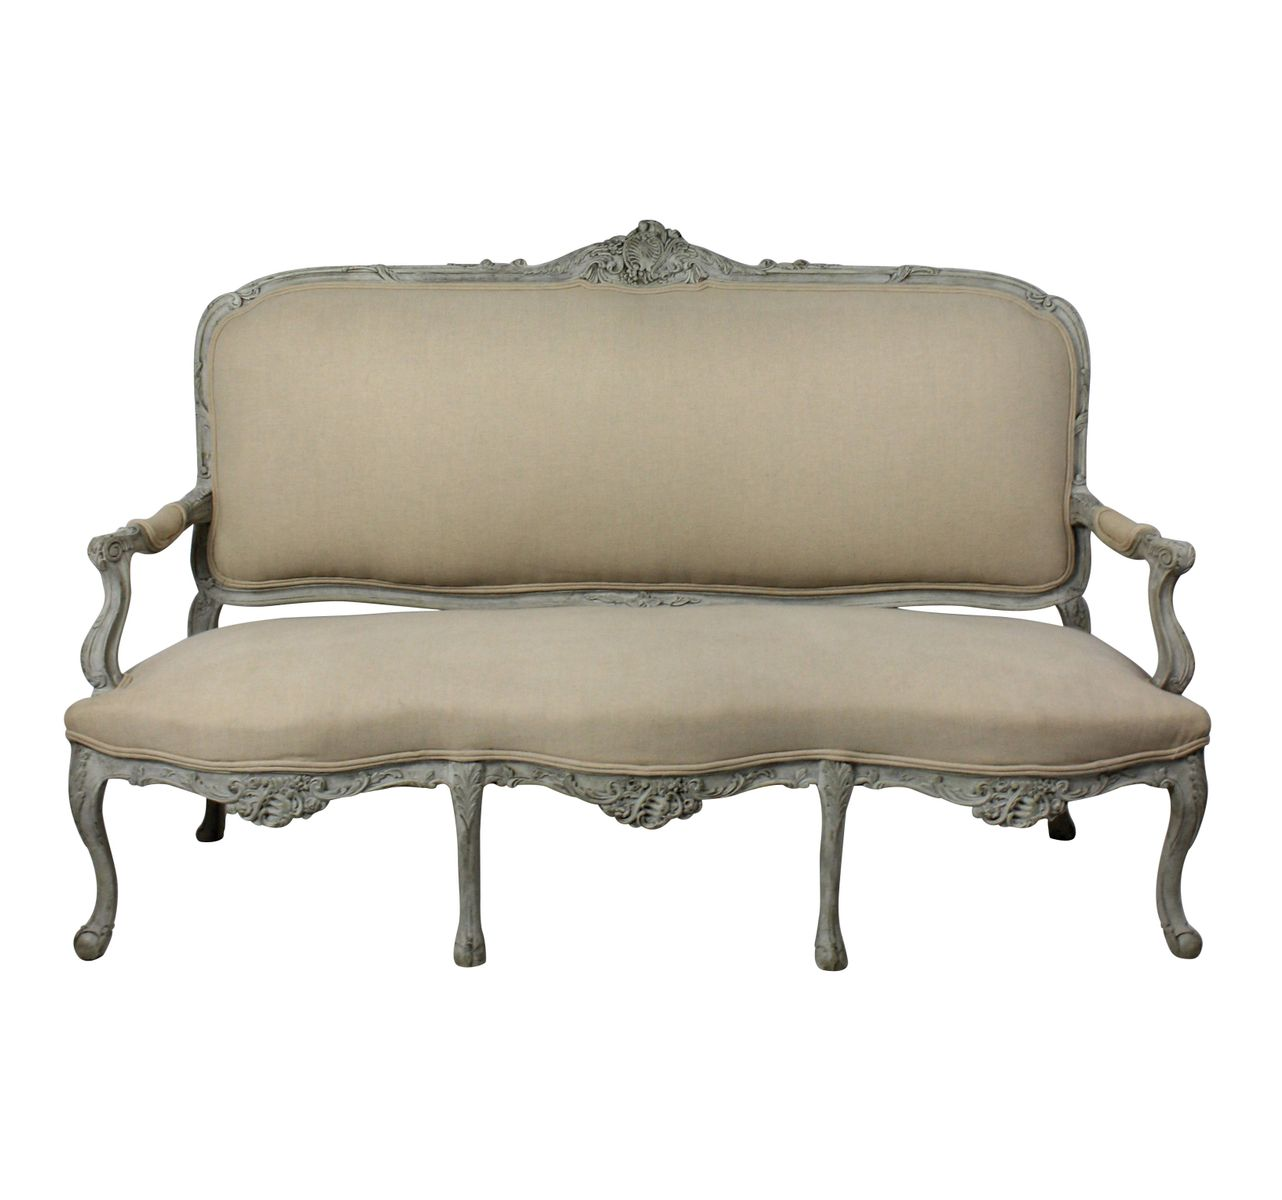 Large painted french canape 1860s for sale at pamono for Canape for sale